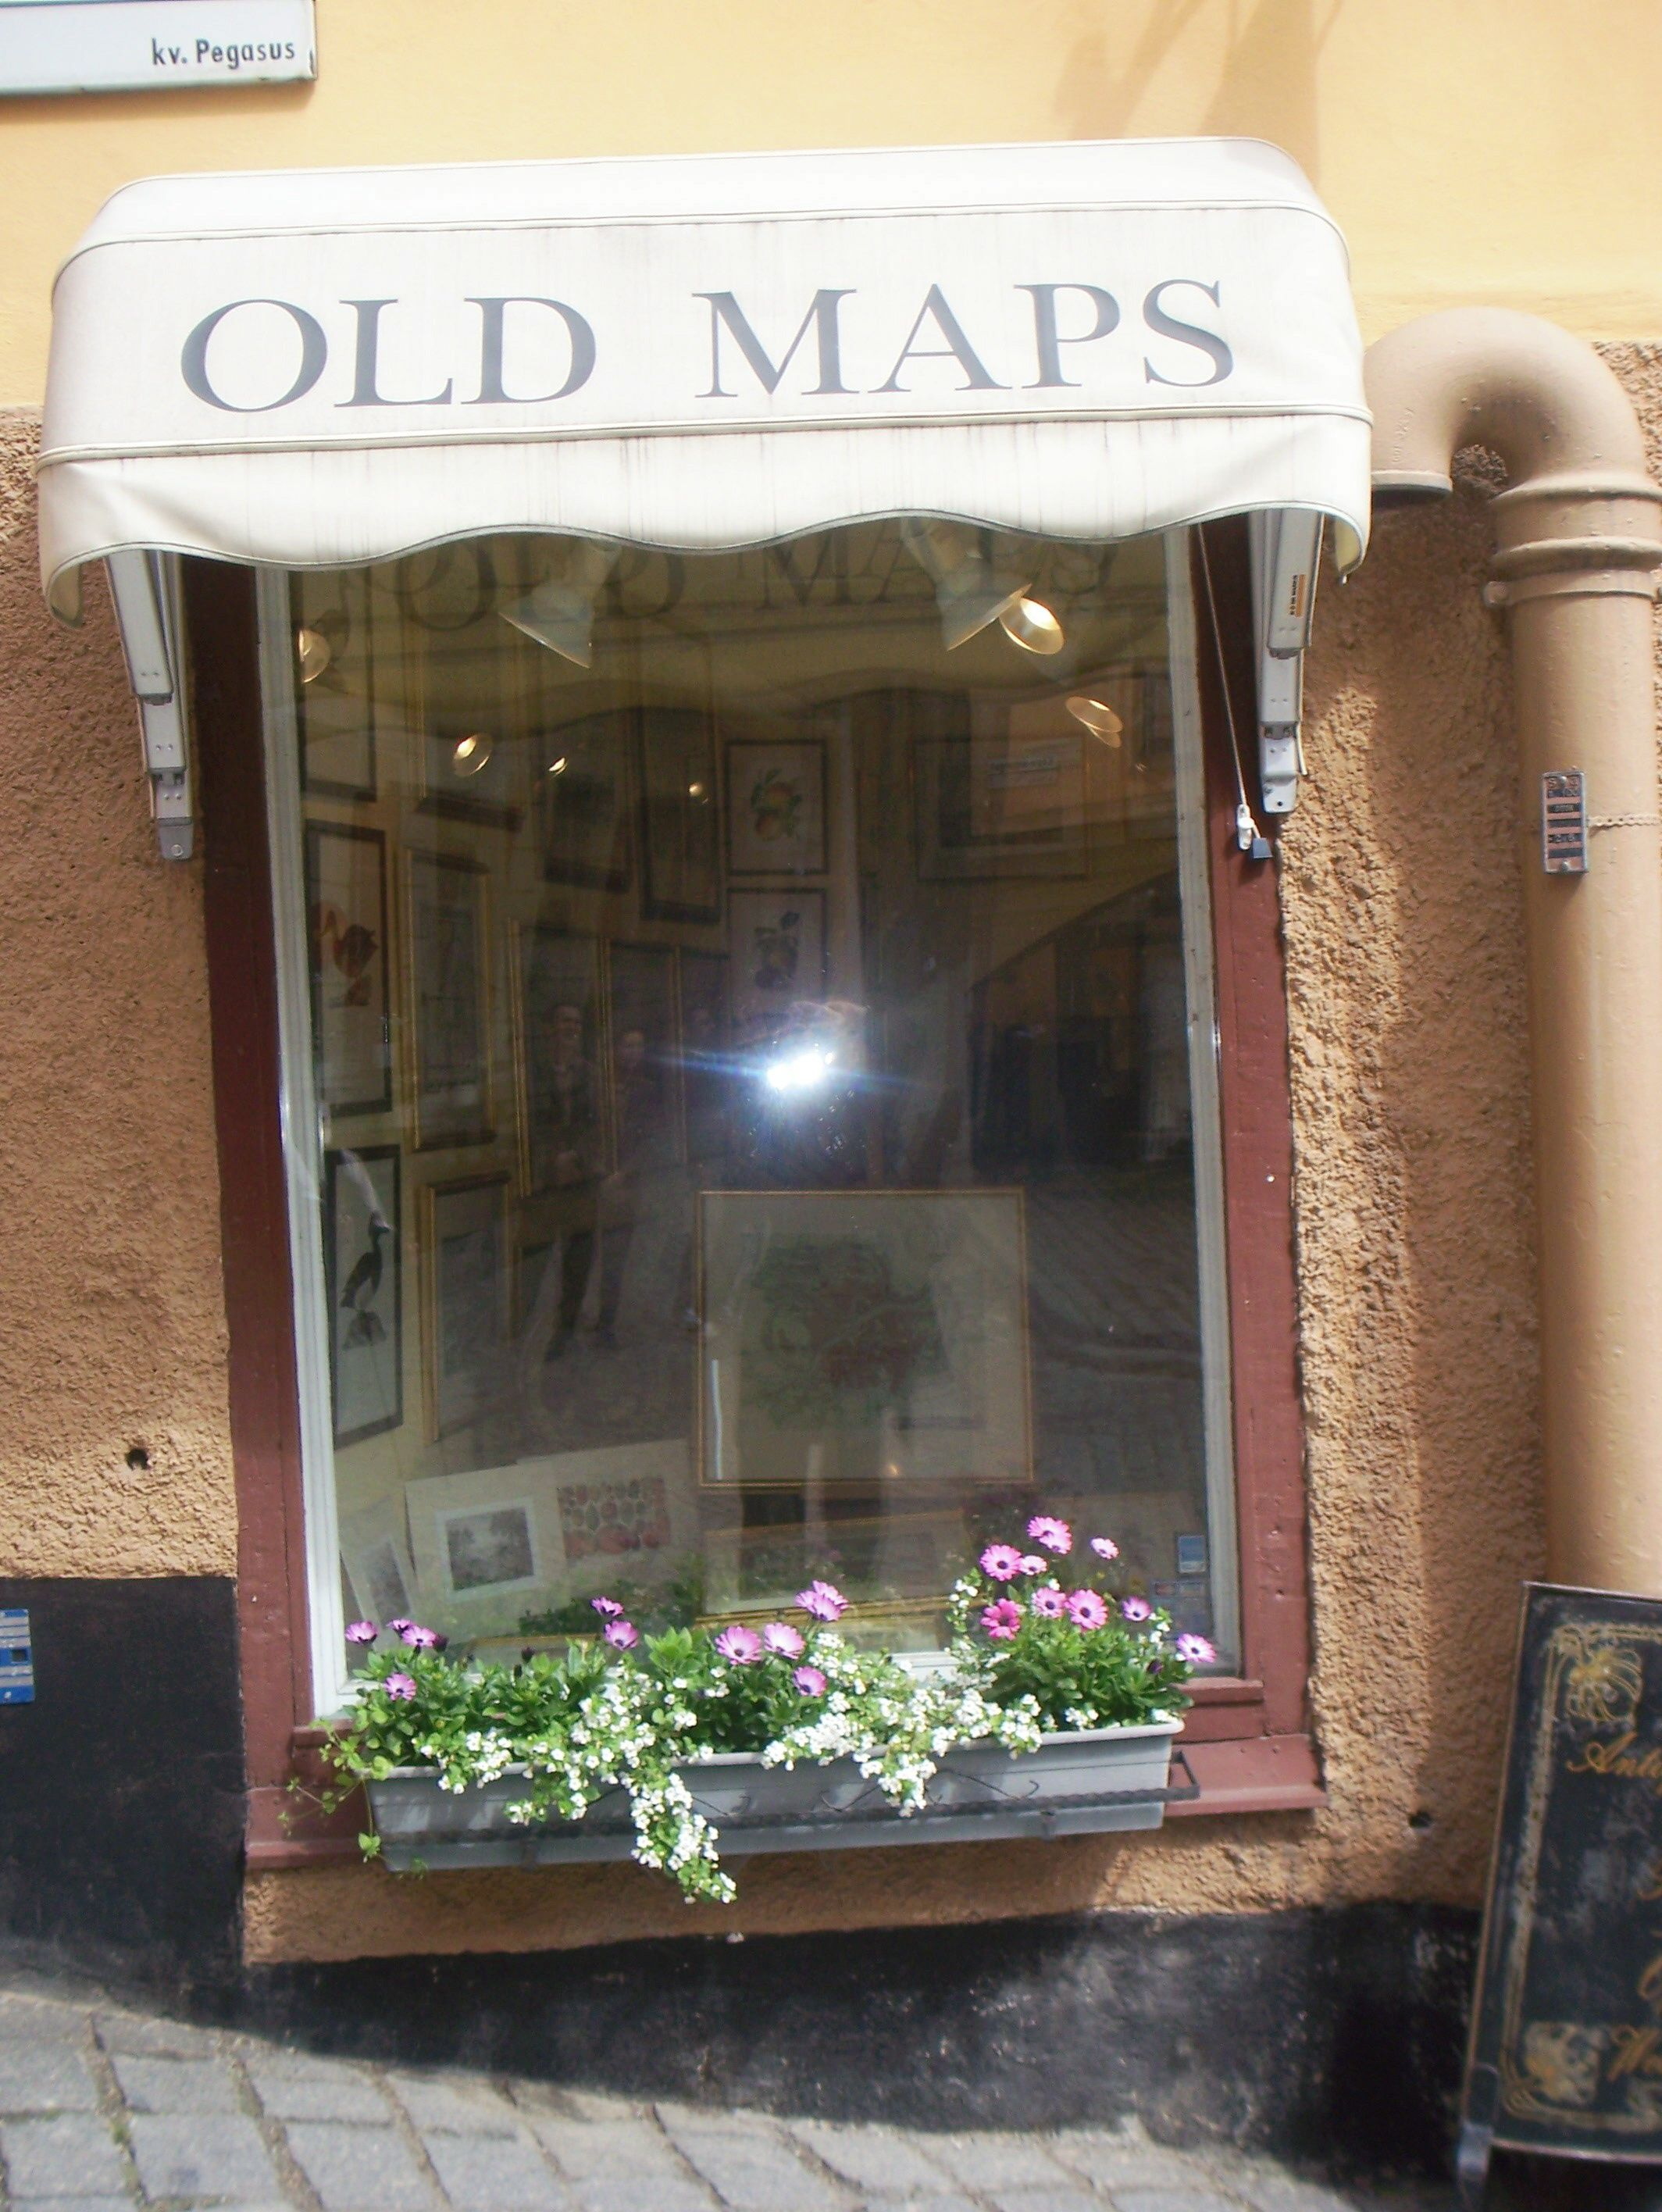 Old Map Shop In Denmark Favorite Places And Spaces Pinterest - Old map shop